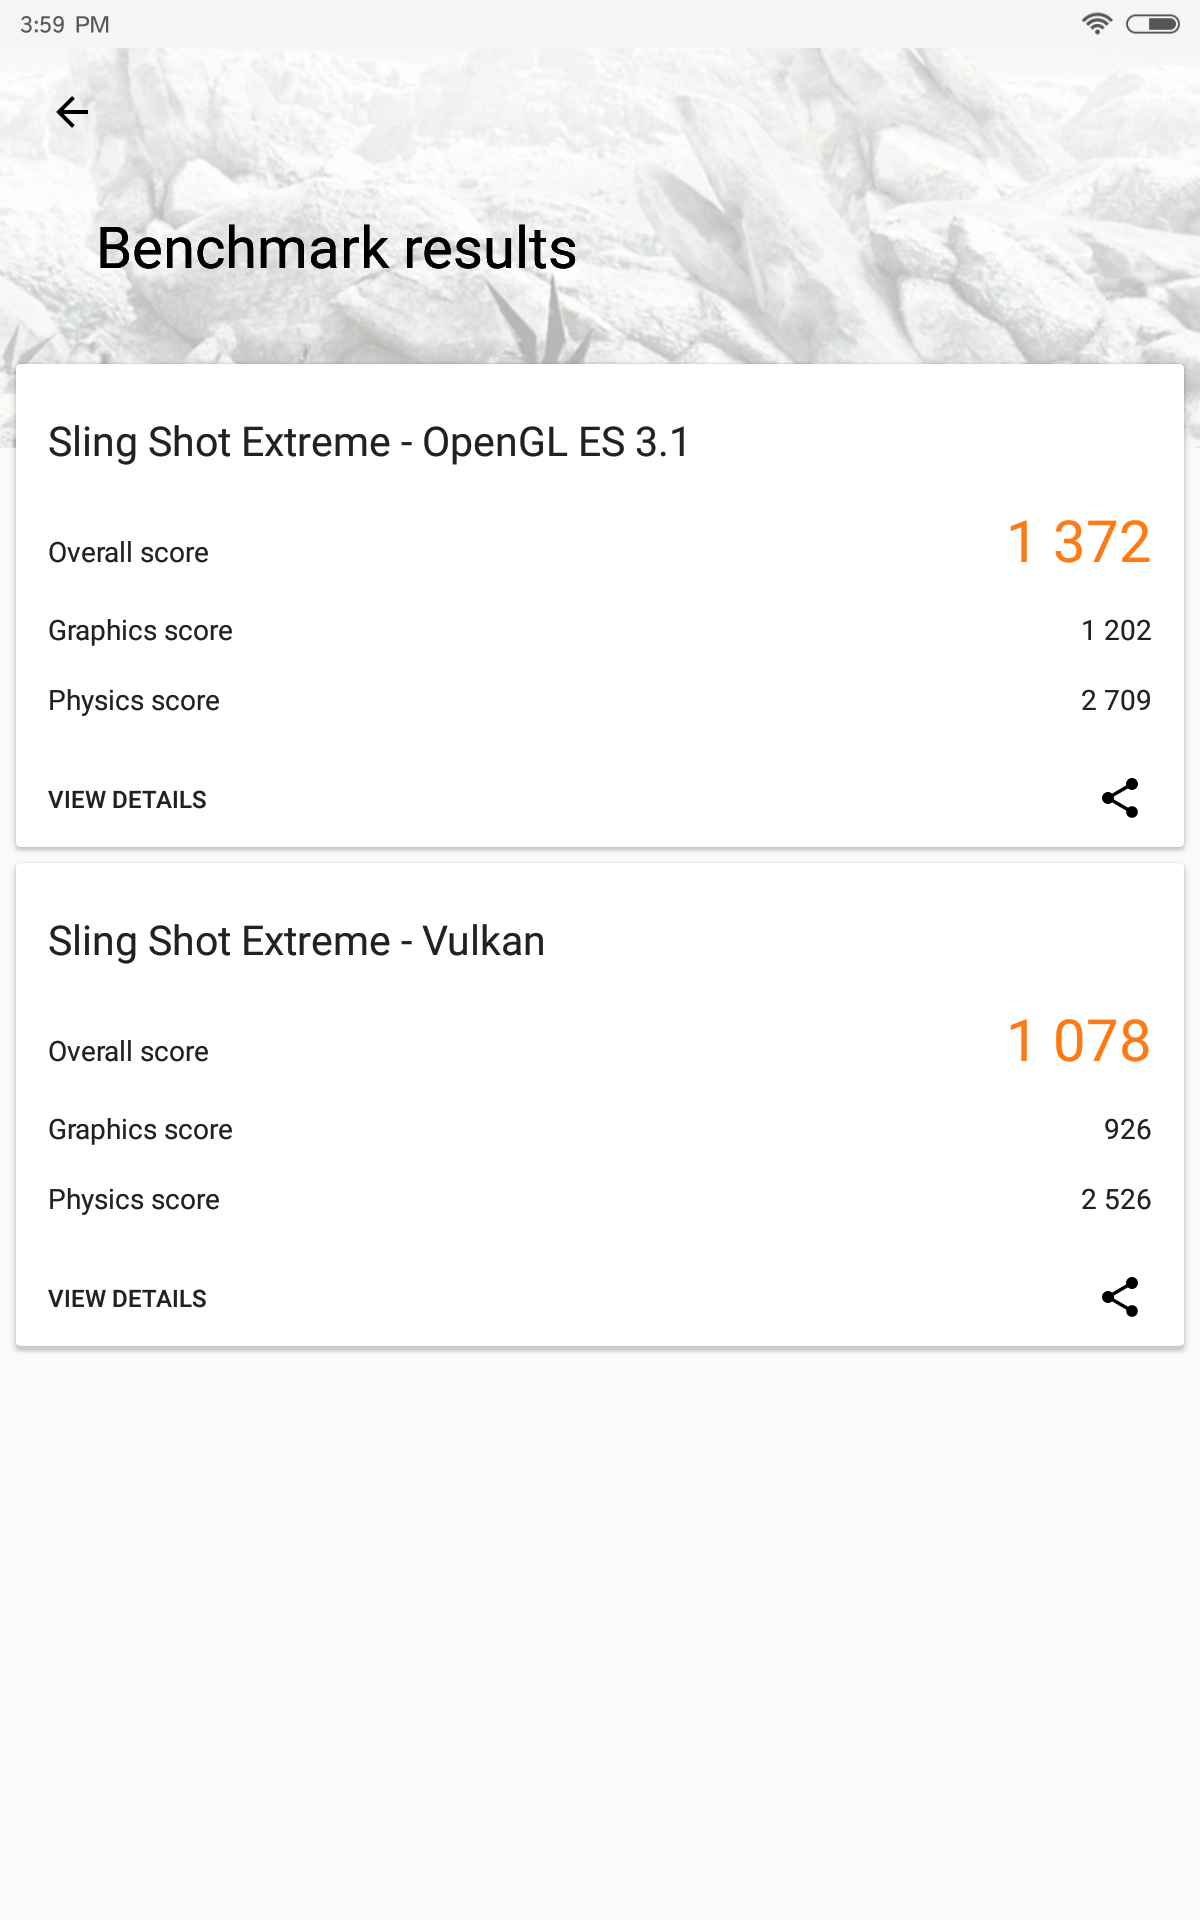 Xiaomi Mi Pad 4 Testbericht 8 Zoll Tablet MIUI Android Benchmarks 8